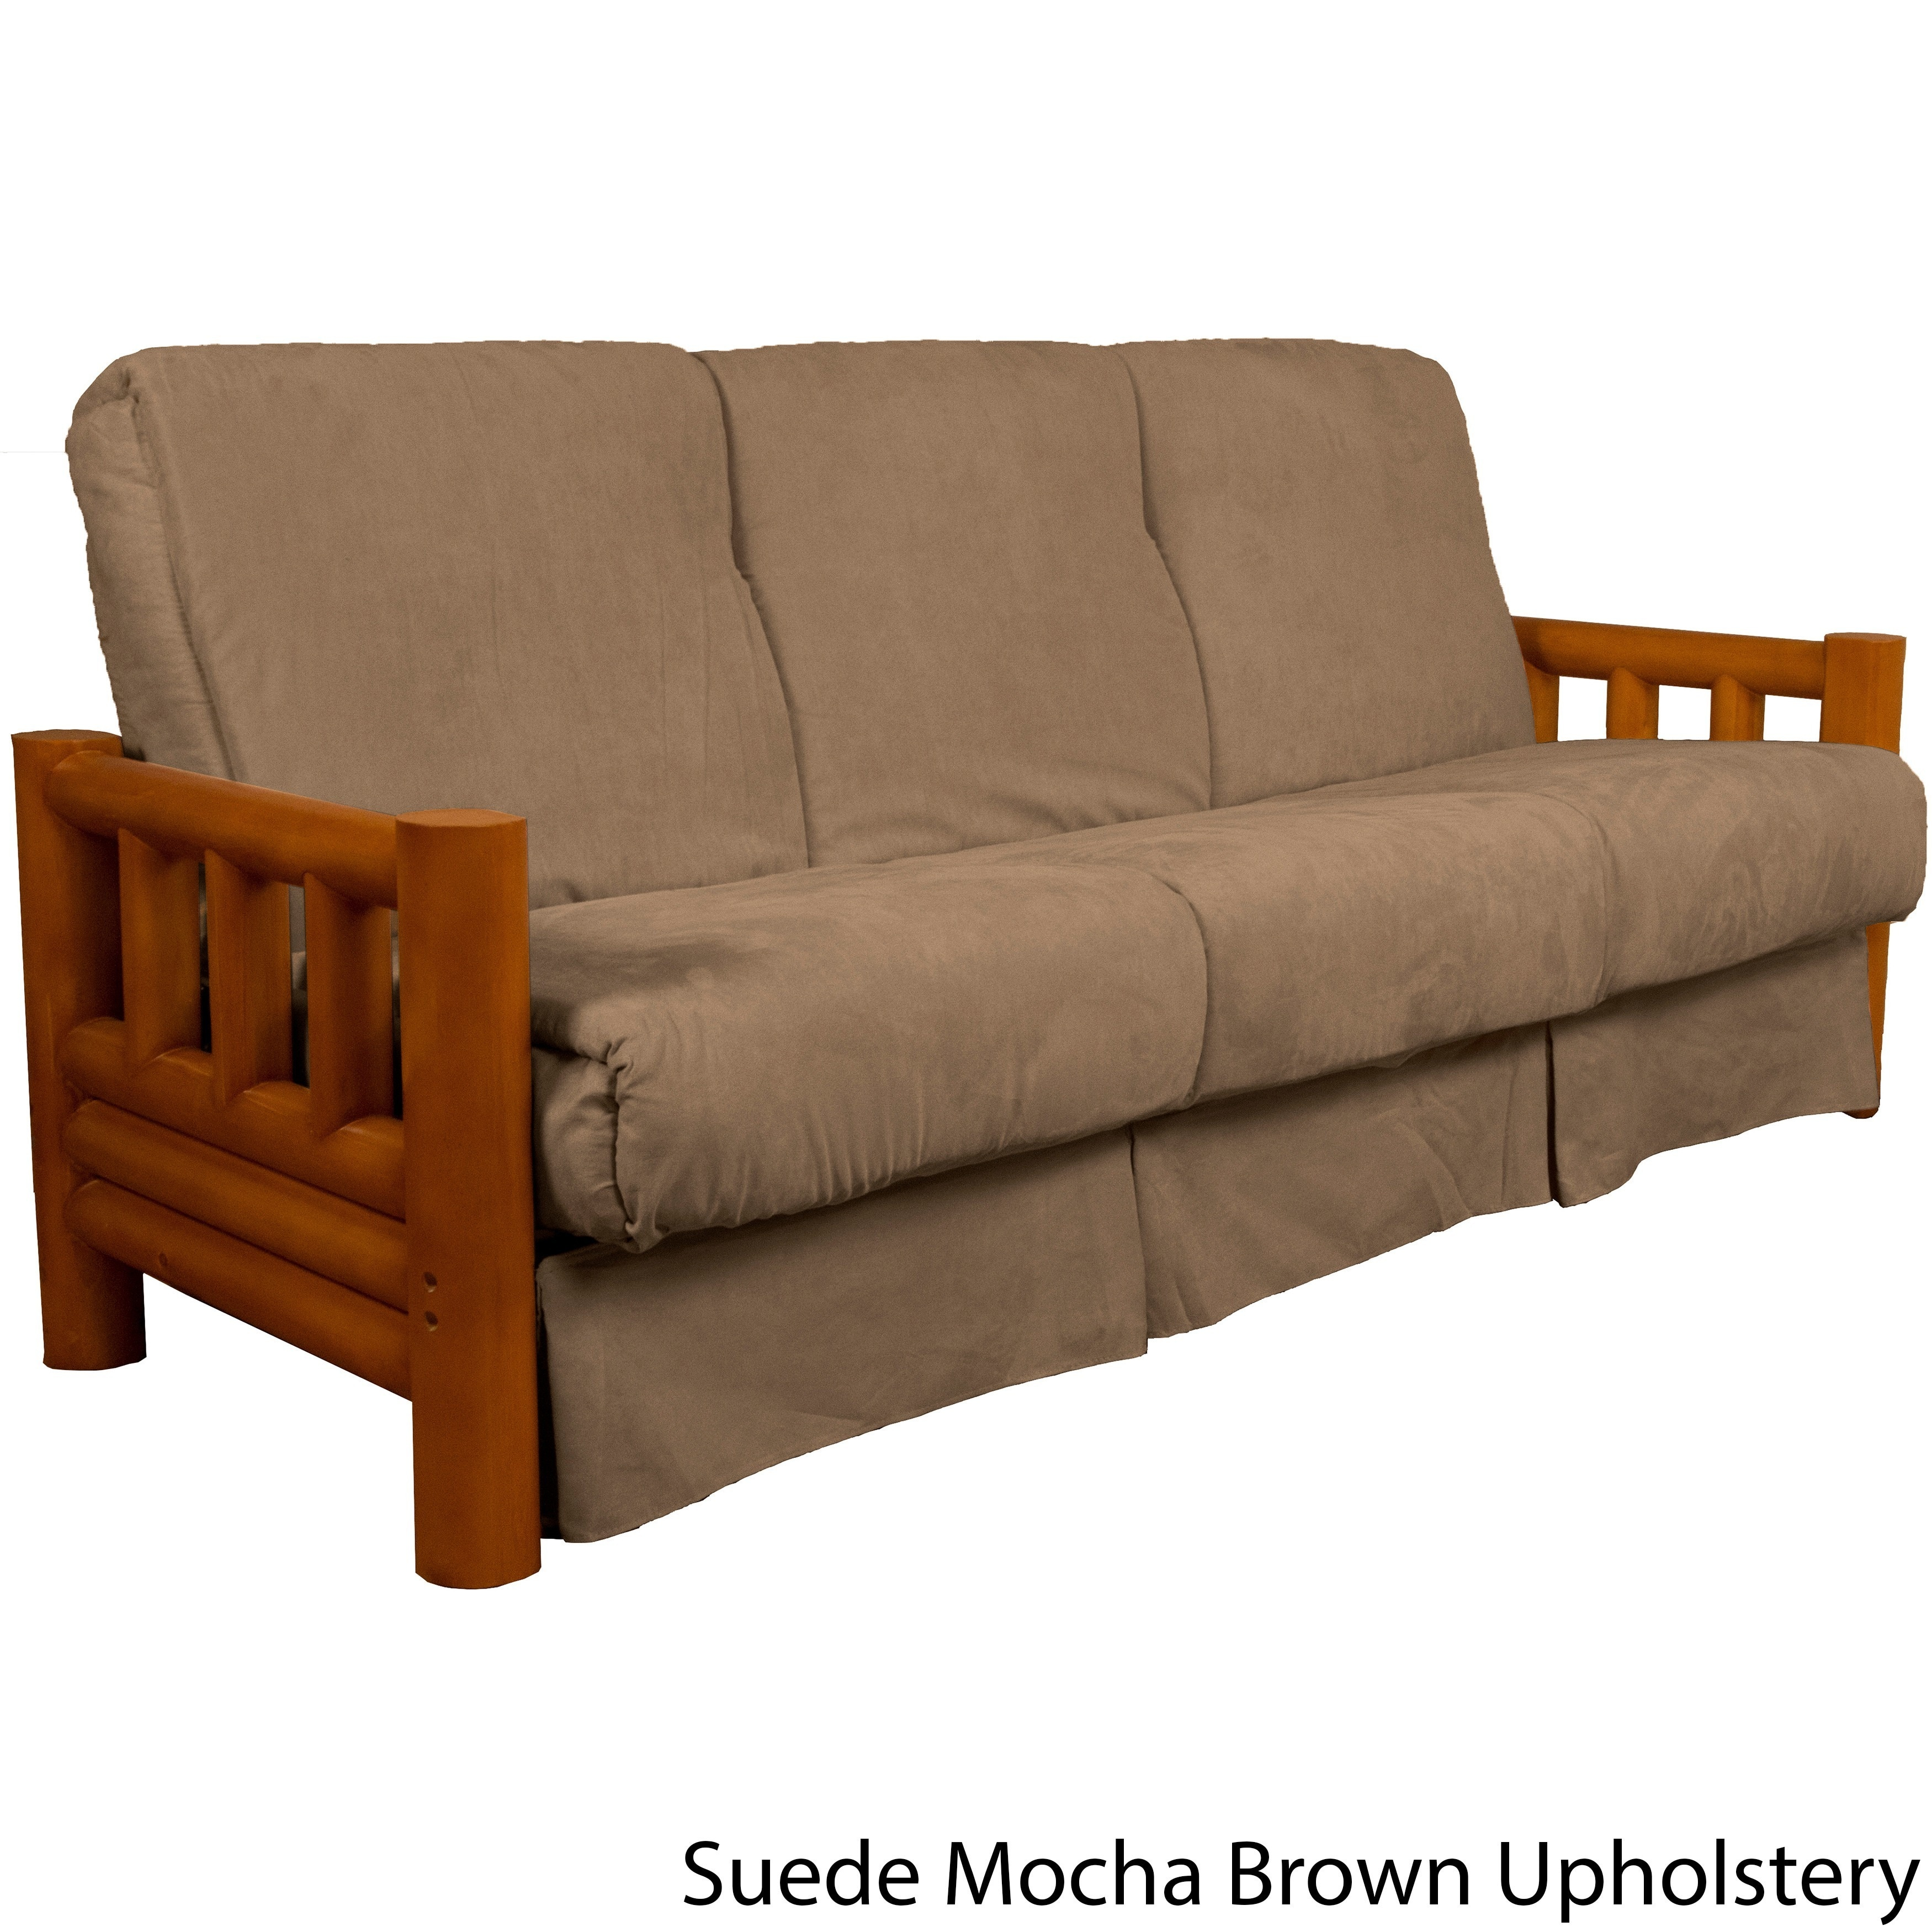 furniture bed futons queen futon sofa comfortable to sleep loveseat on ashley couch sectional sleeper beds